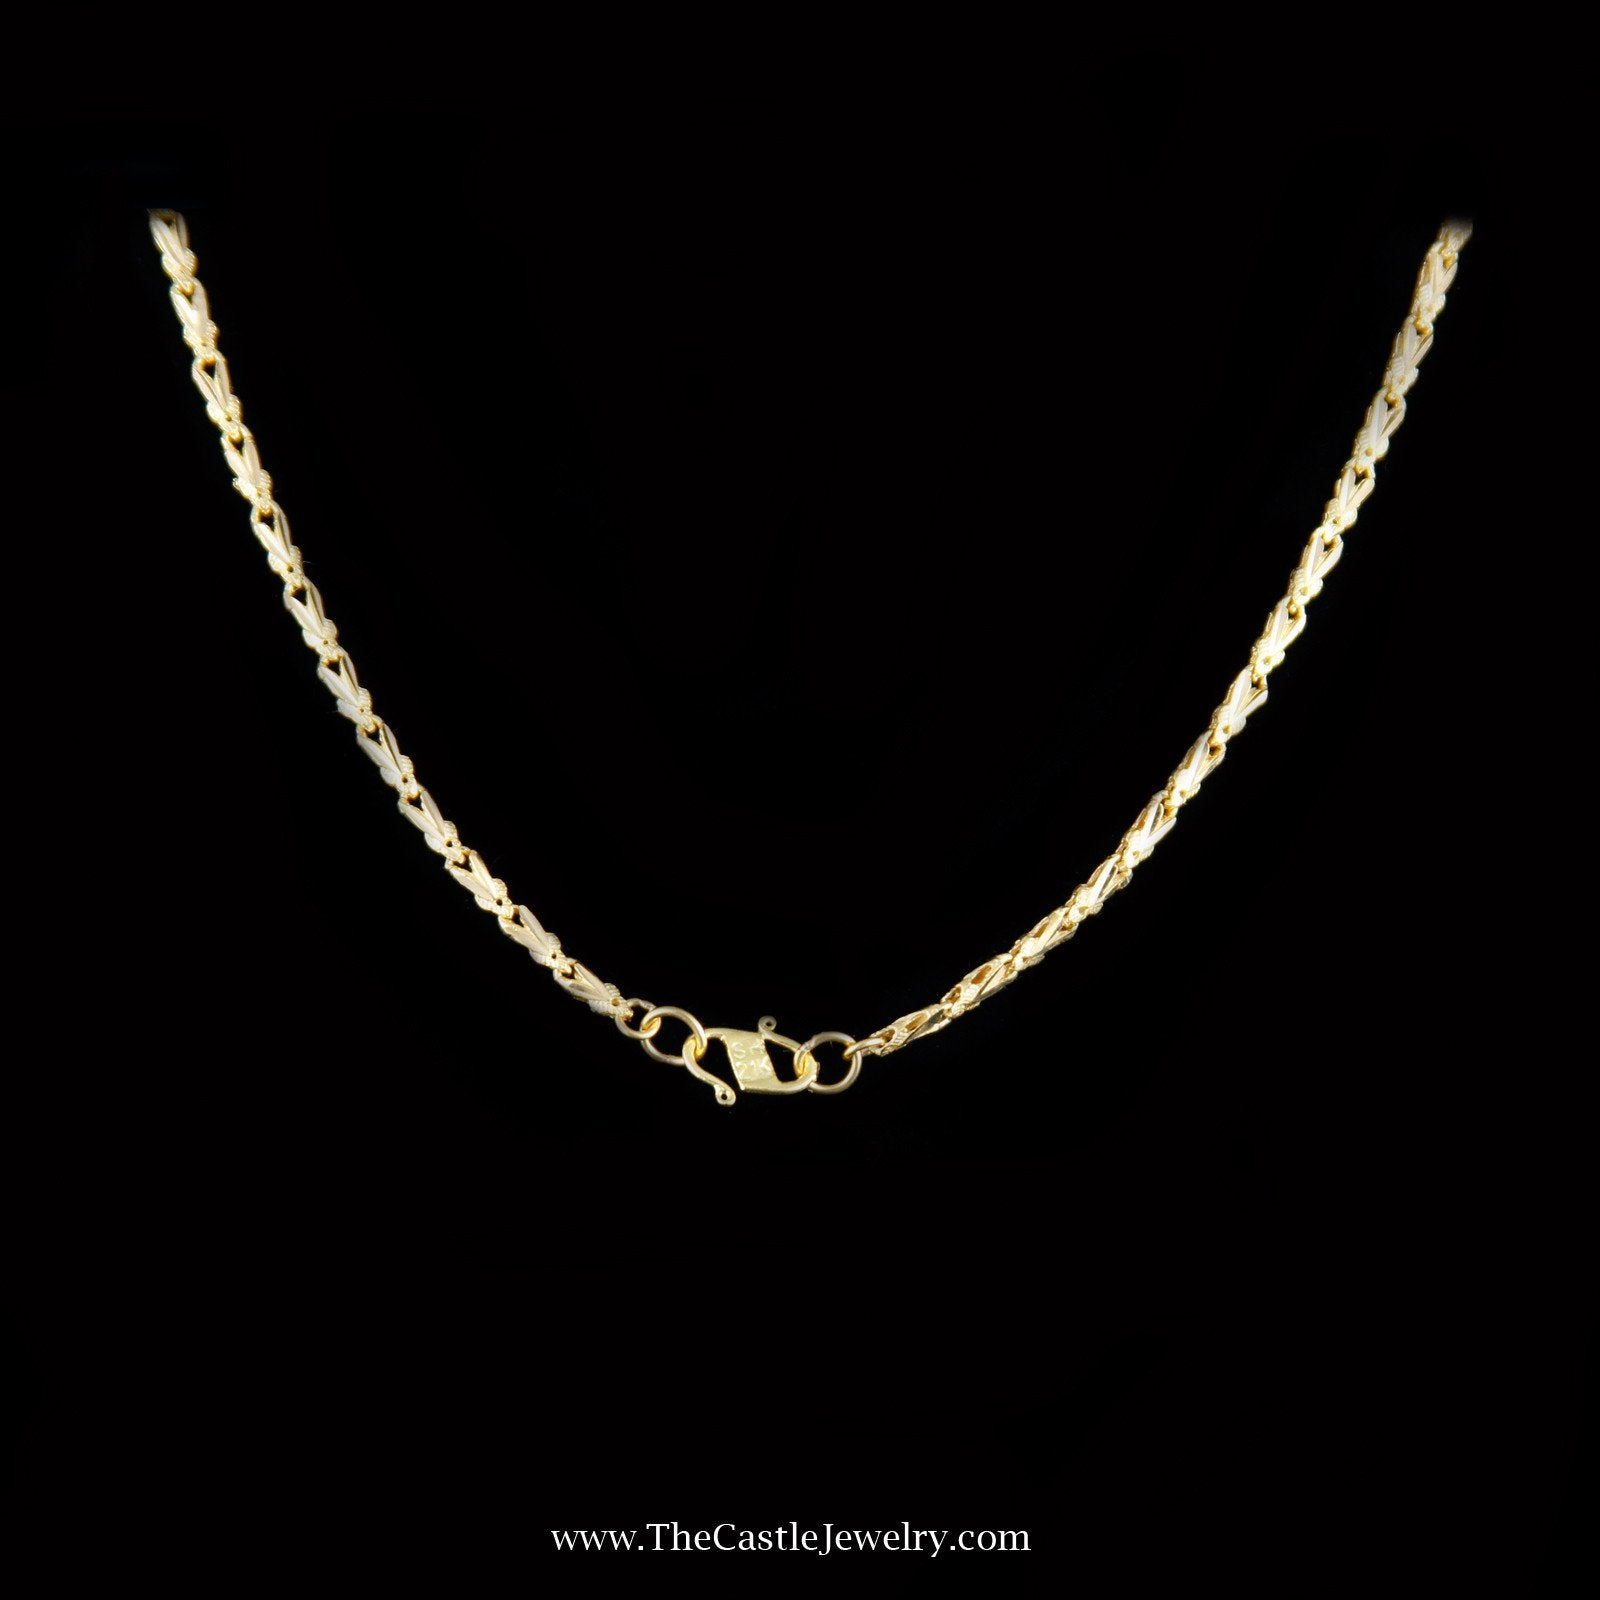 Charming Flower Link Necklace in 21K Yellow Gold-1